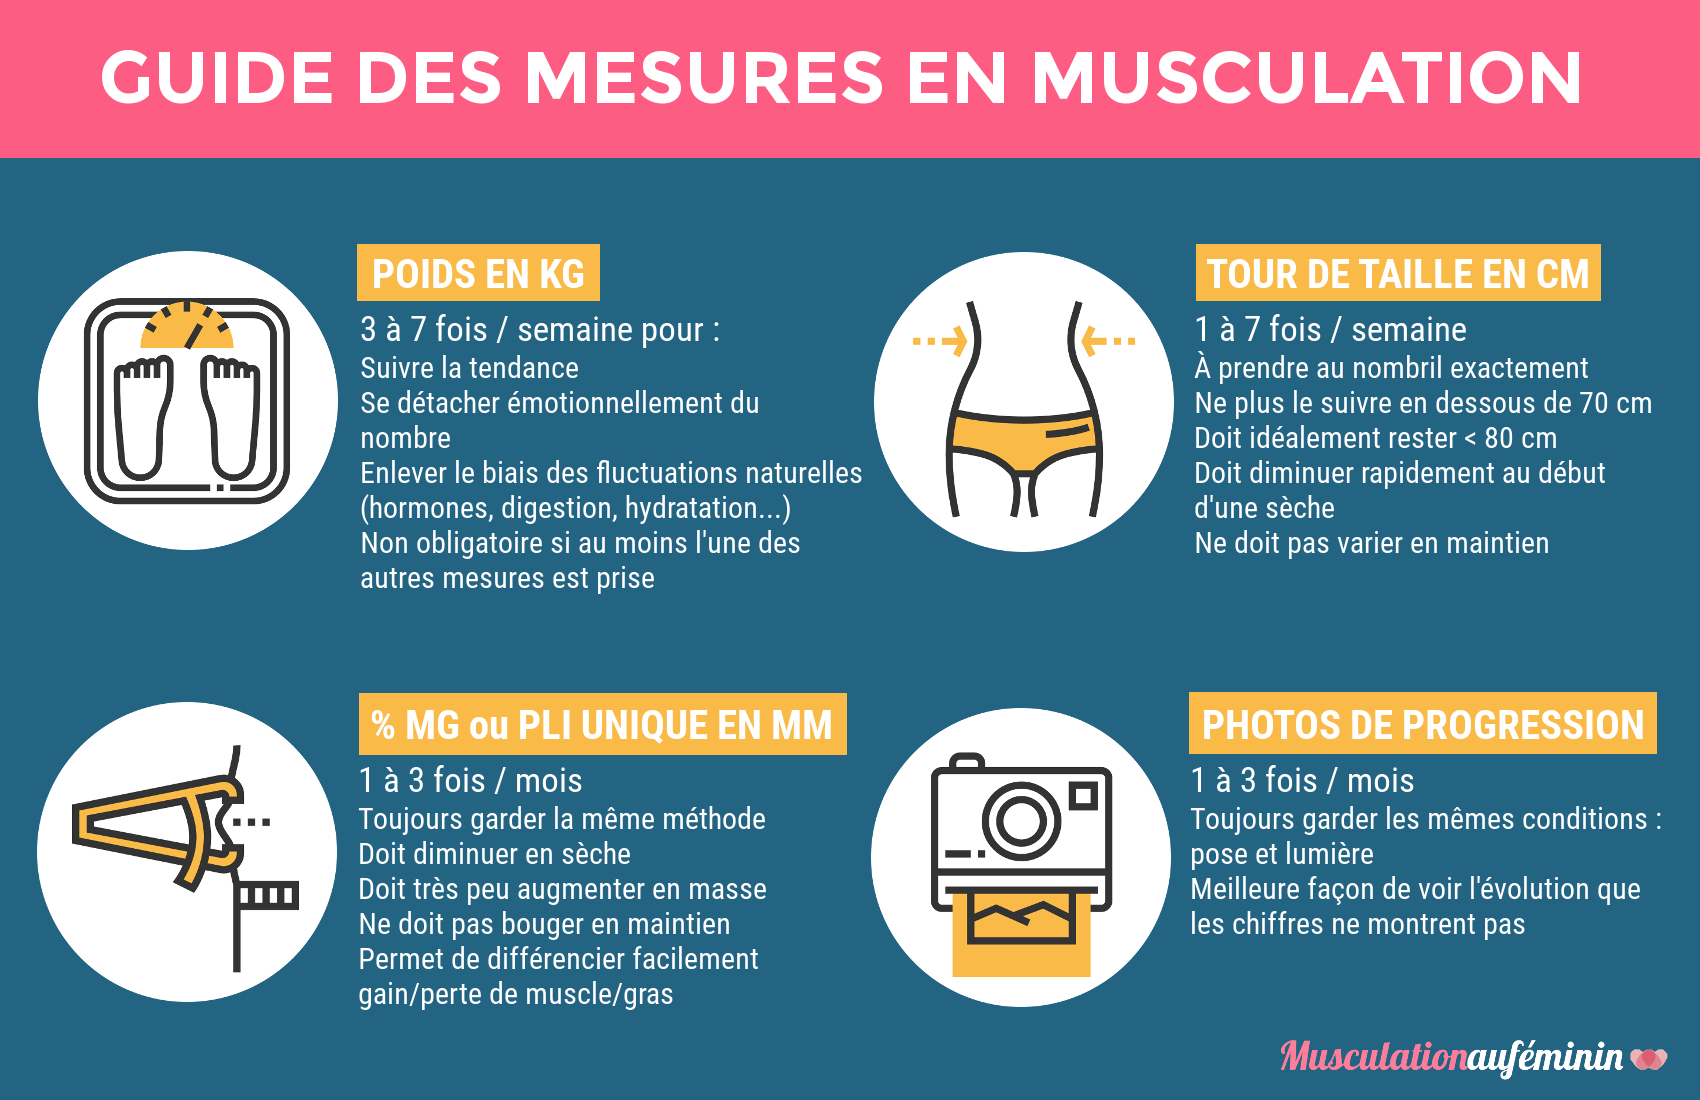 Musculation au f minin programmes conseils et outils for Guide musculation